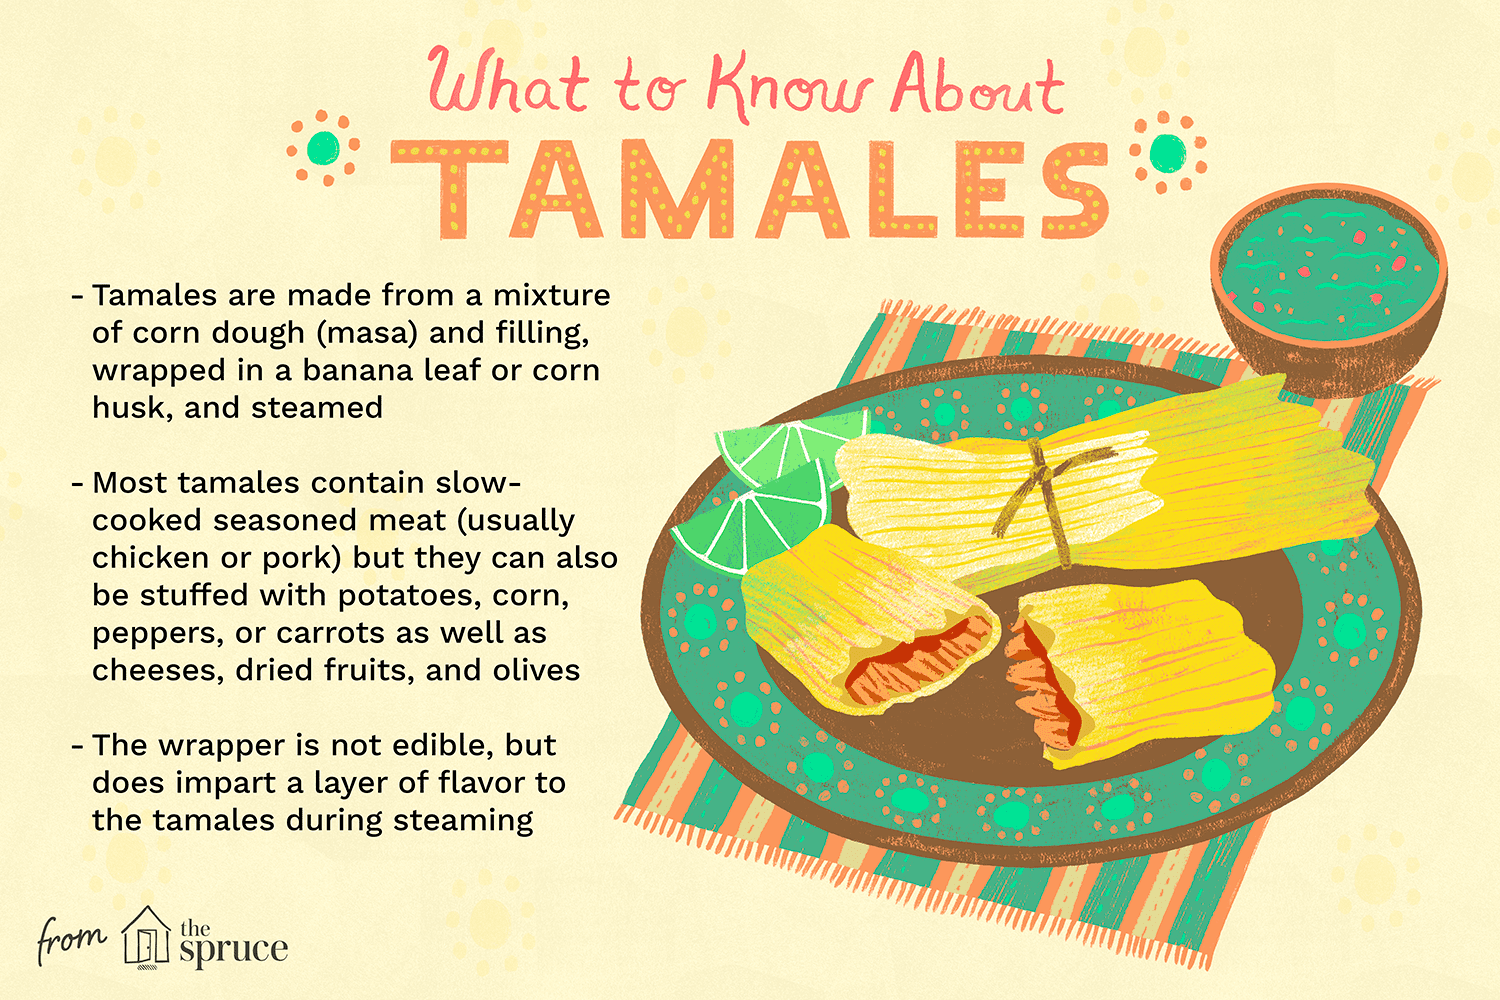 All about tamales